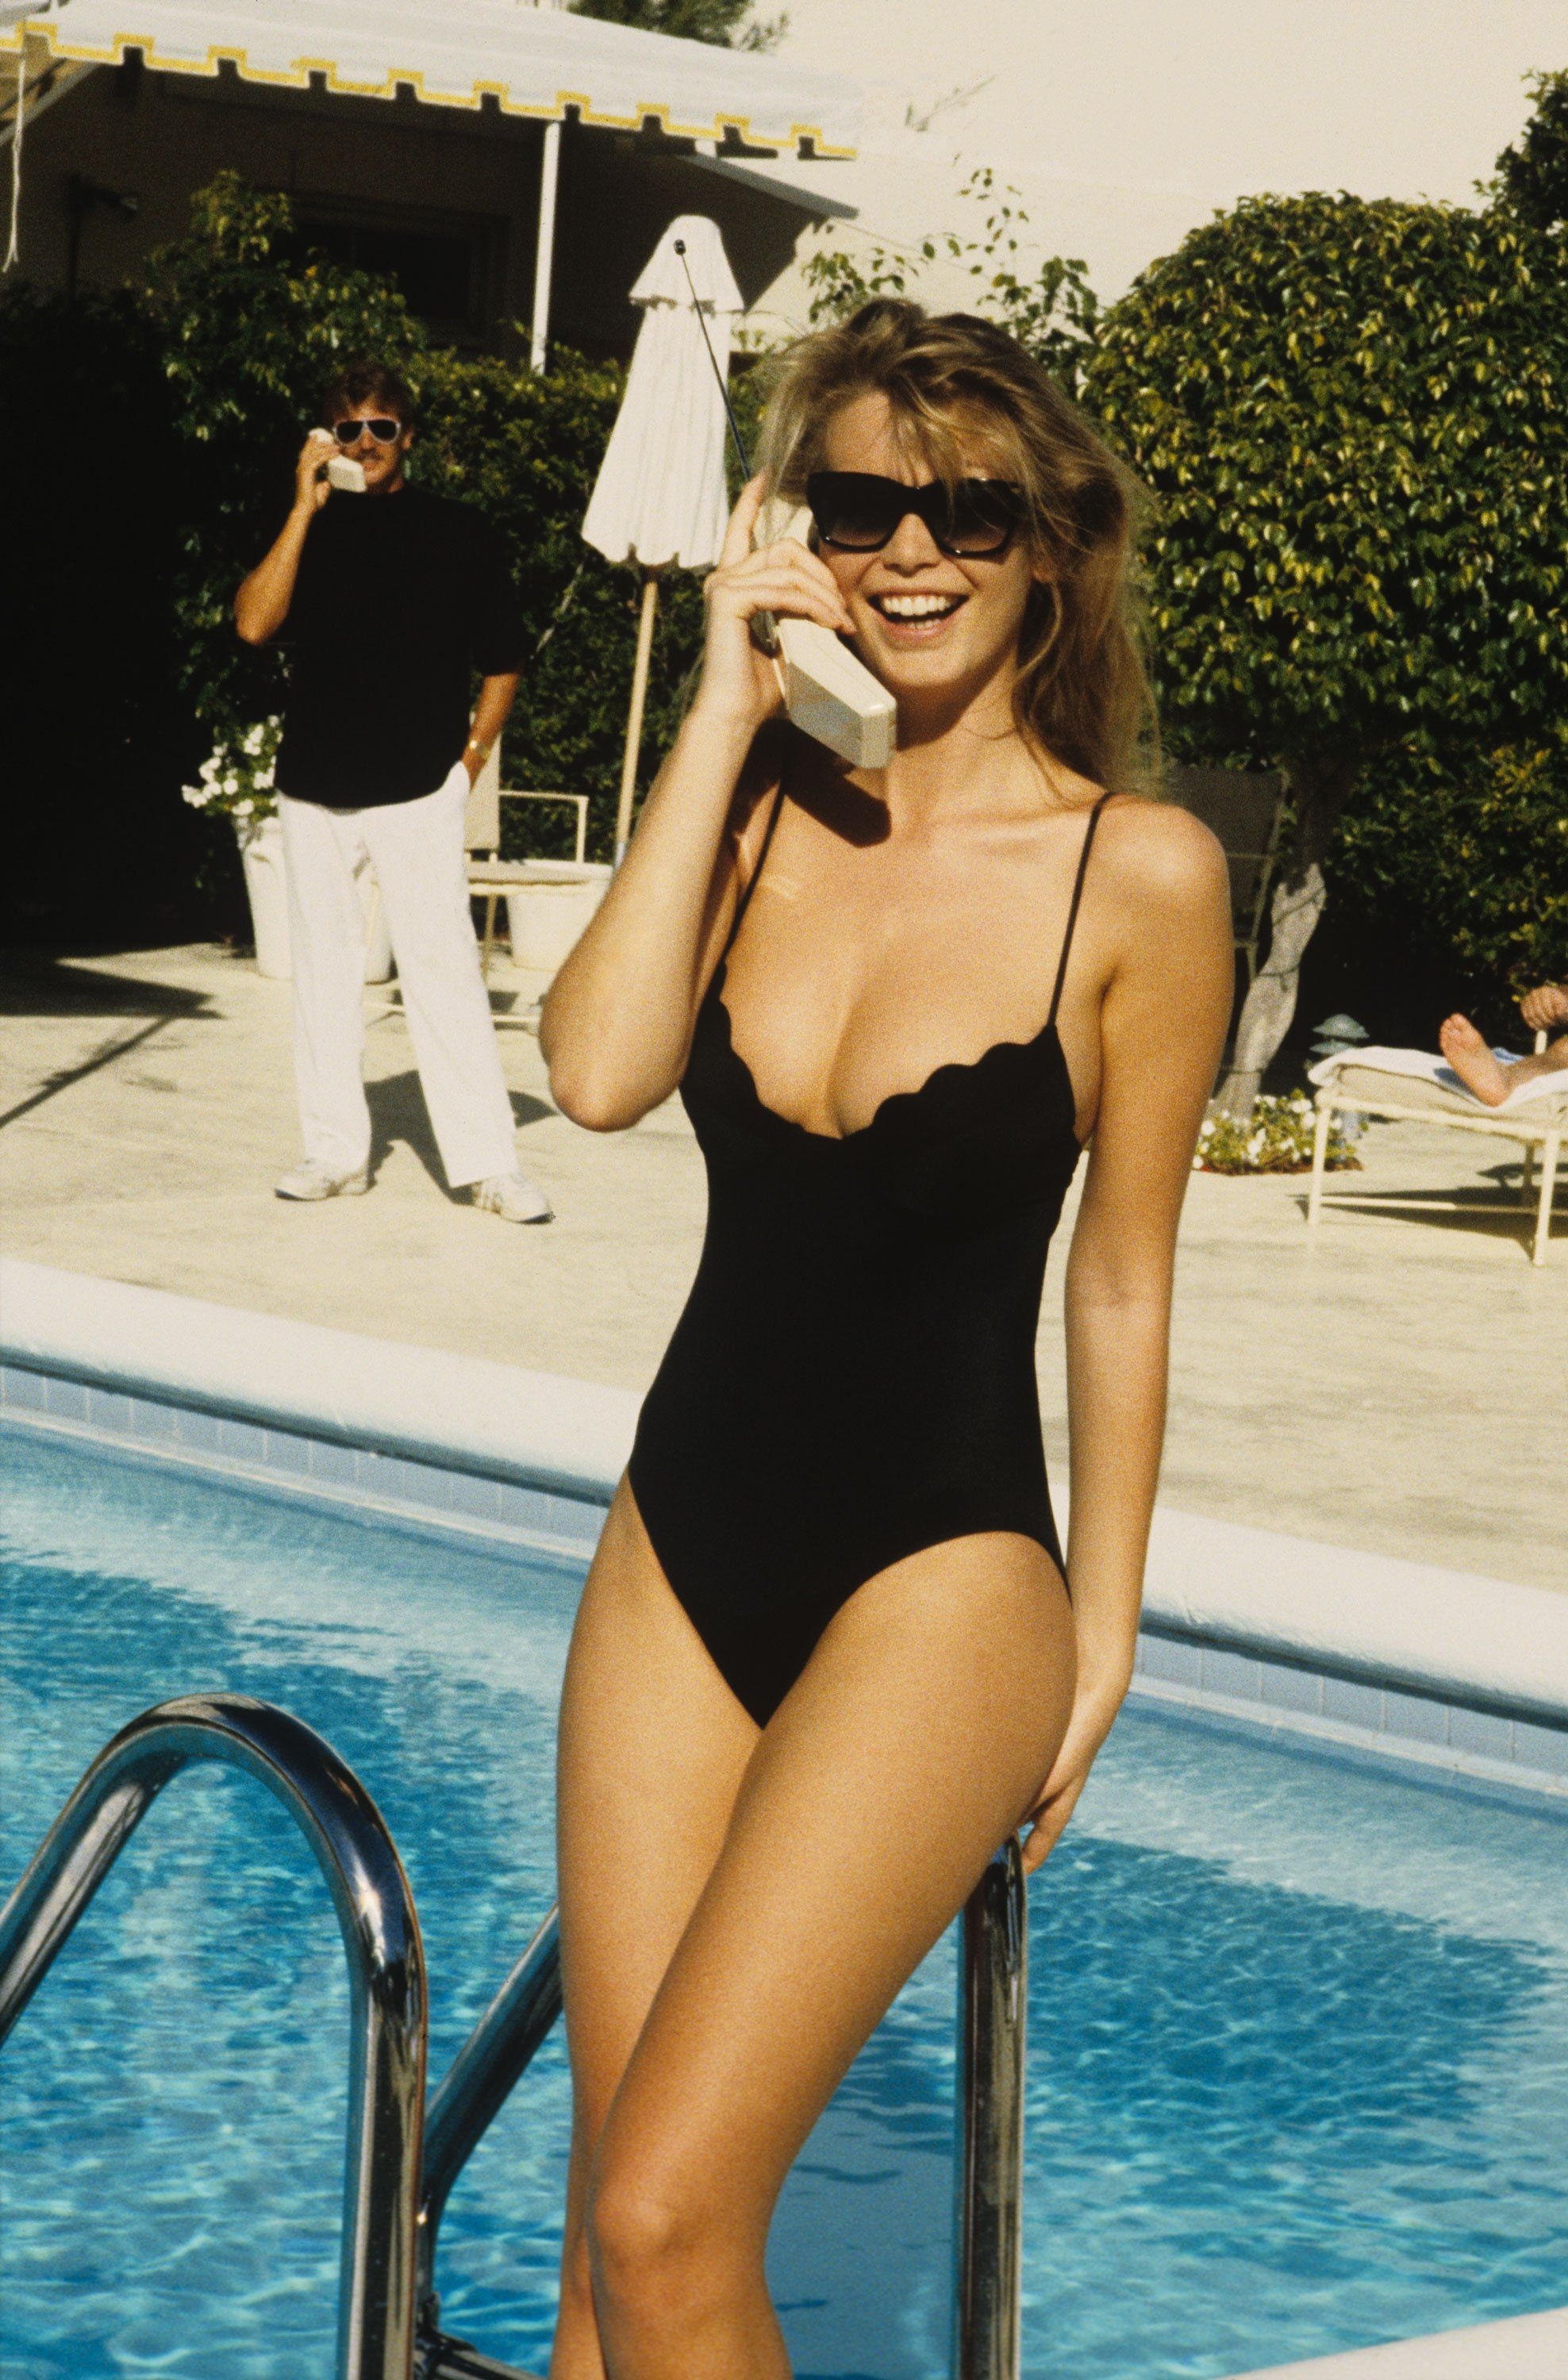 d7a411bc251f9 Hotline bling  Claudia Schiffer at Palm Beach s iconic Colony